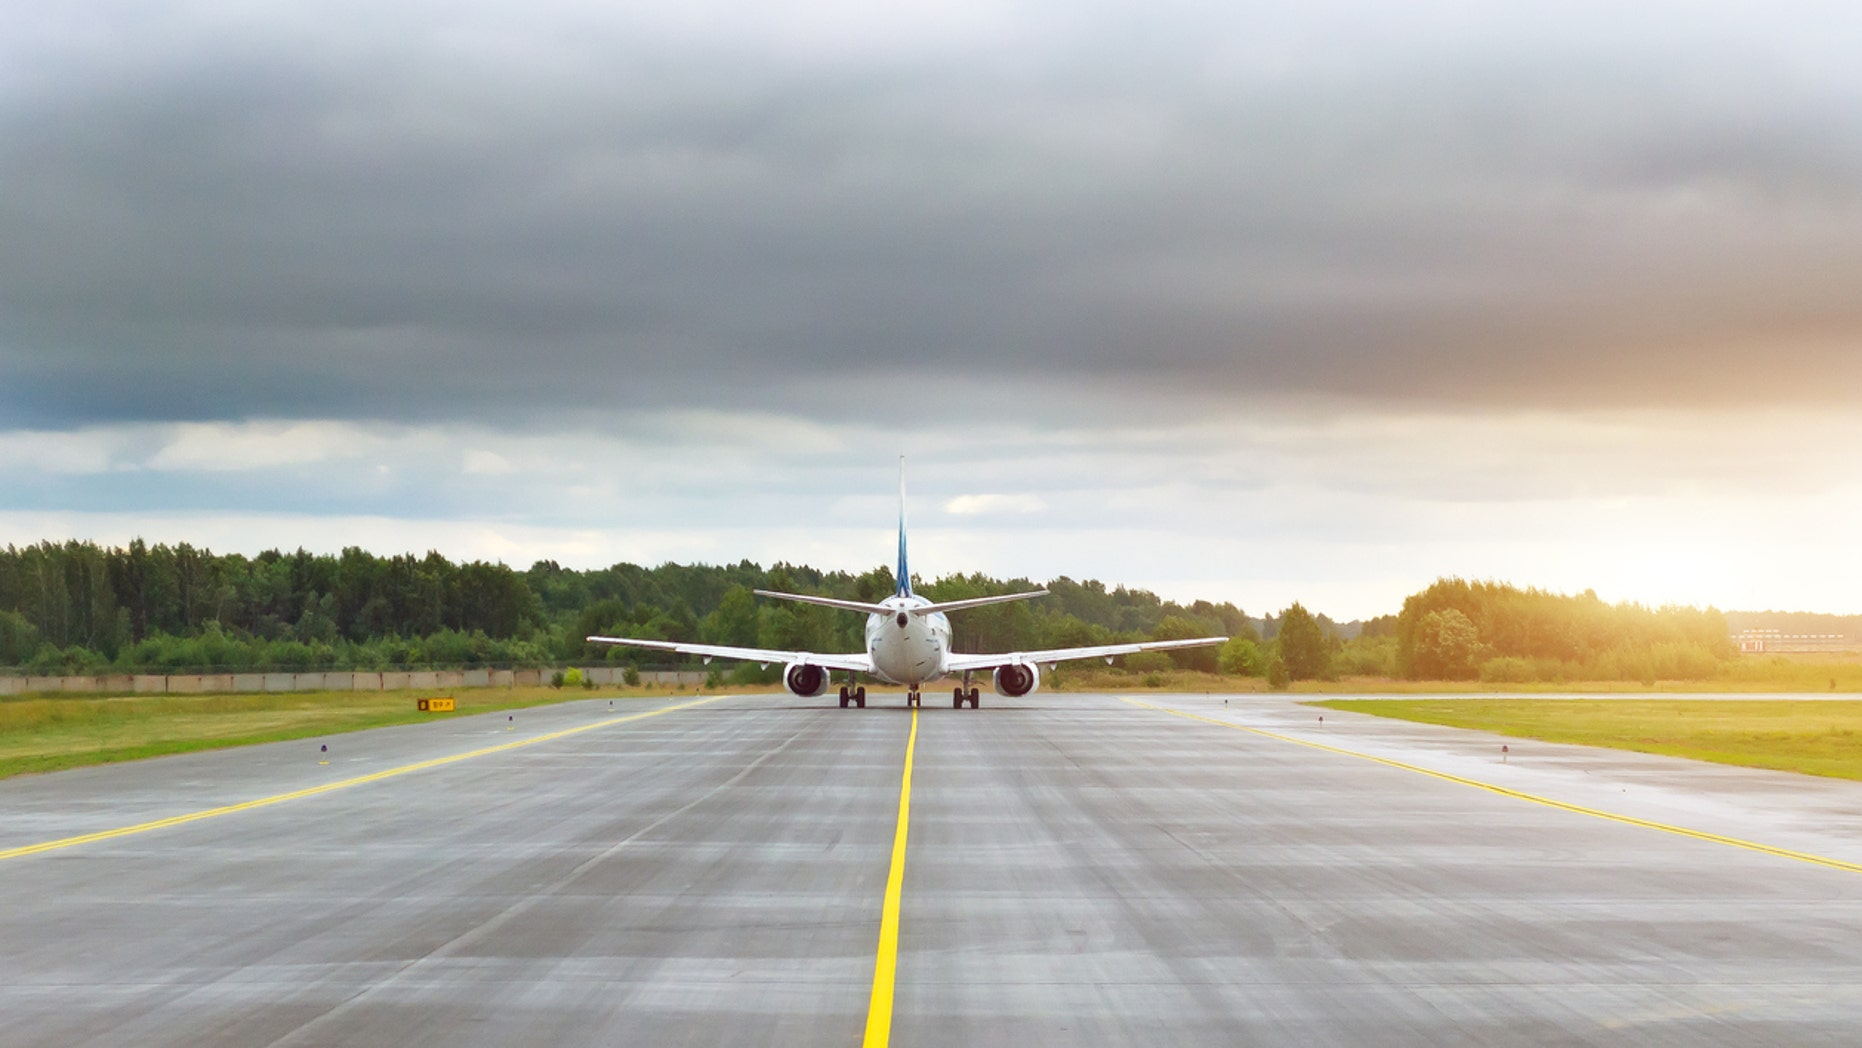 A woman thought she could make her flight if she just made it to the plane before takeoff.